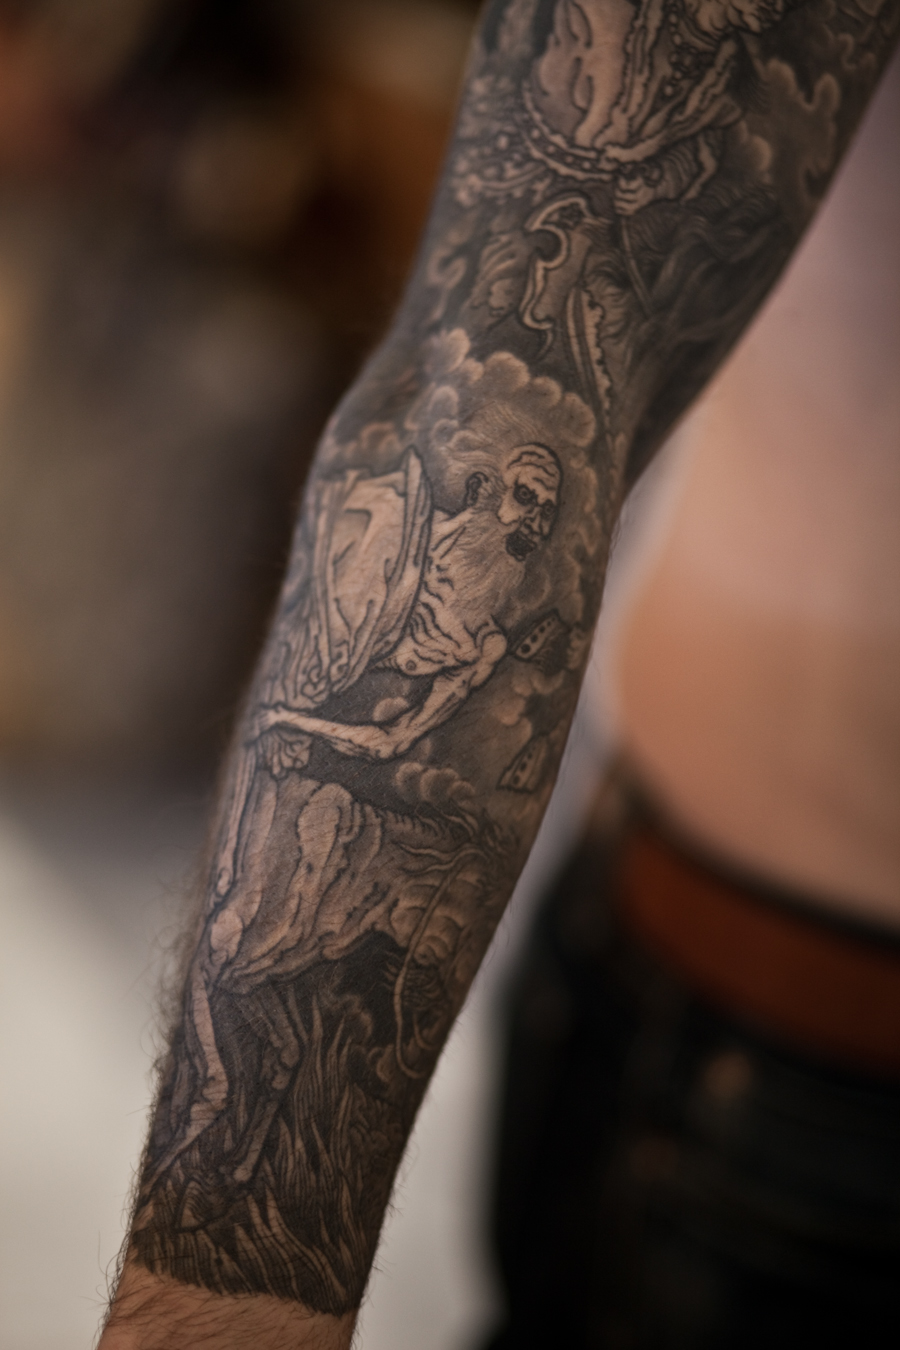 4 Horsemen Tattoo : horsemen, tattoo, Horsemen, Apocalypse, Sleeve, Tattoo, Thomas, Hooper, NYC-6, Hoopers, Electric